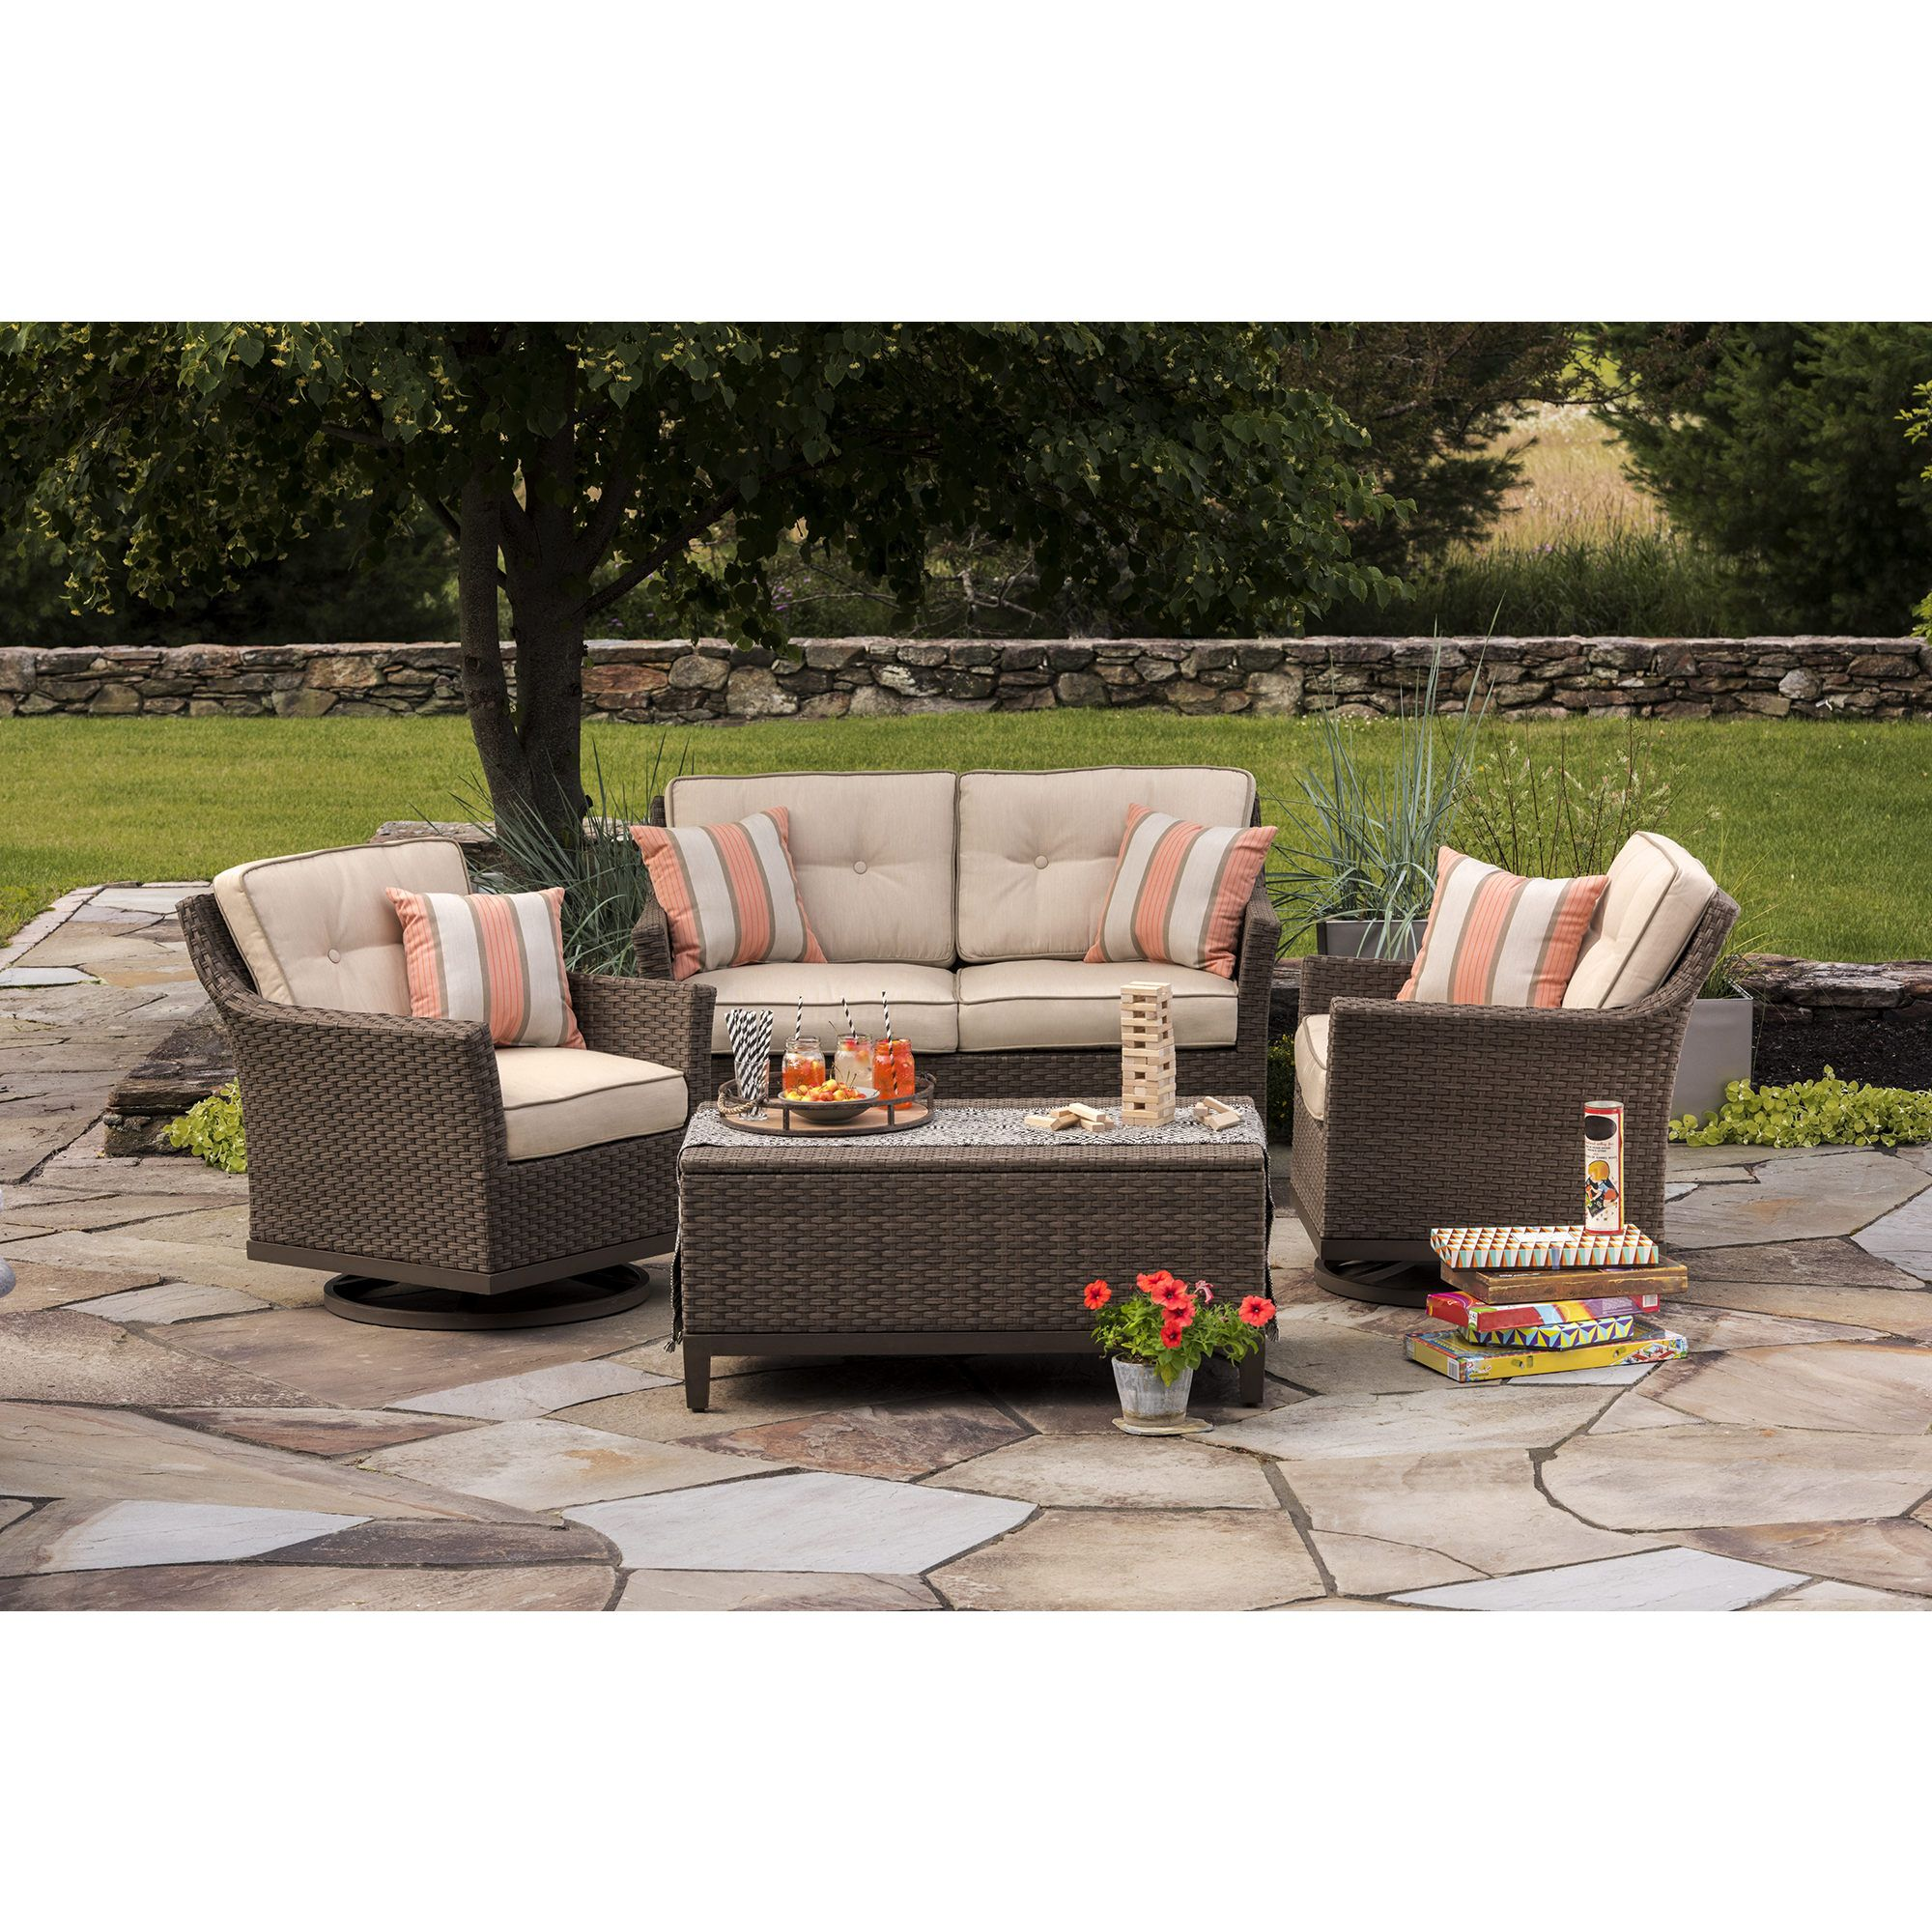 Berkley Jensen 4 Piece Wicker Deep Seating Set In Taupe